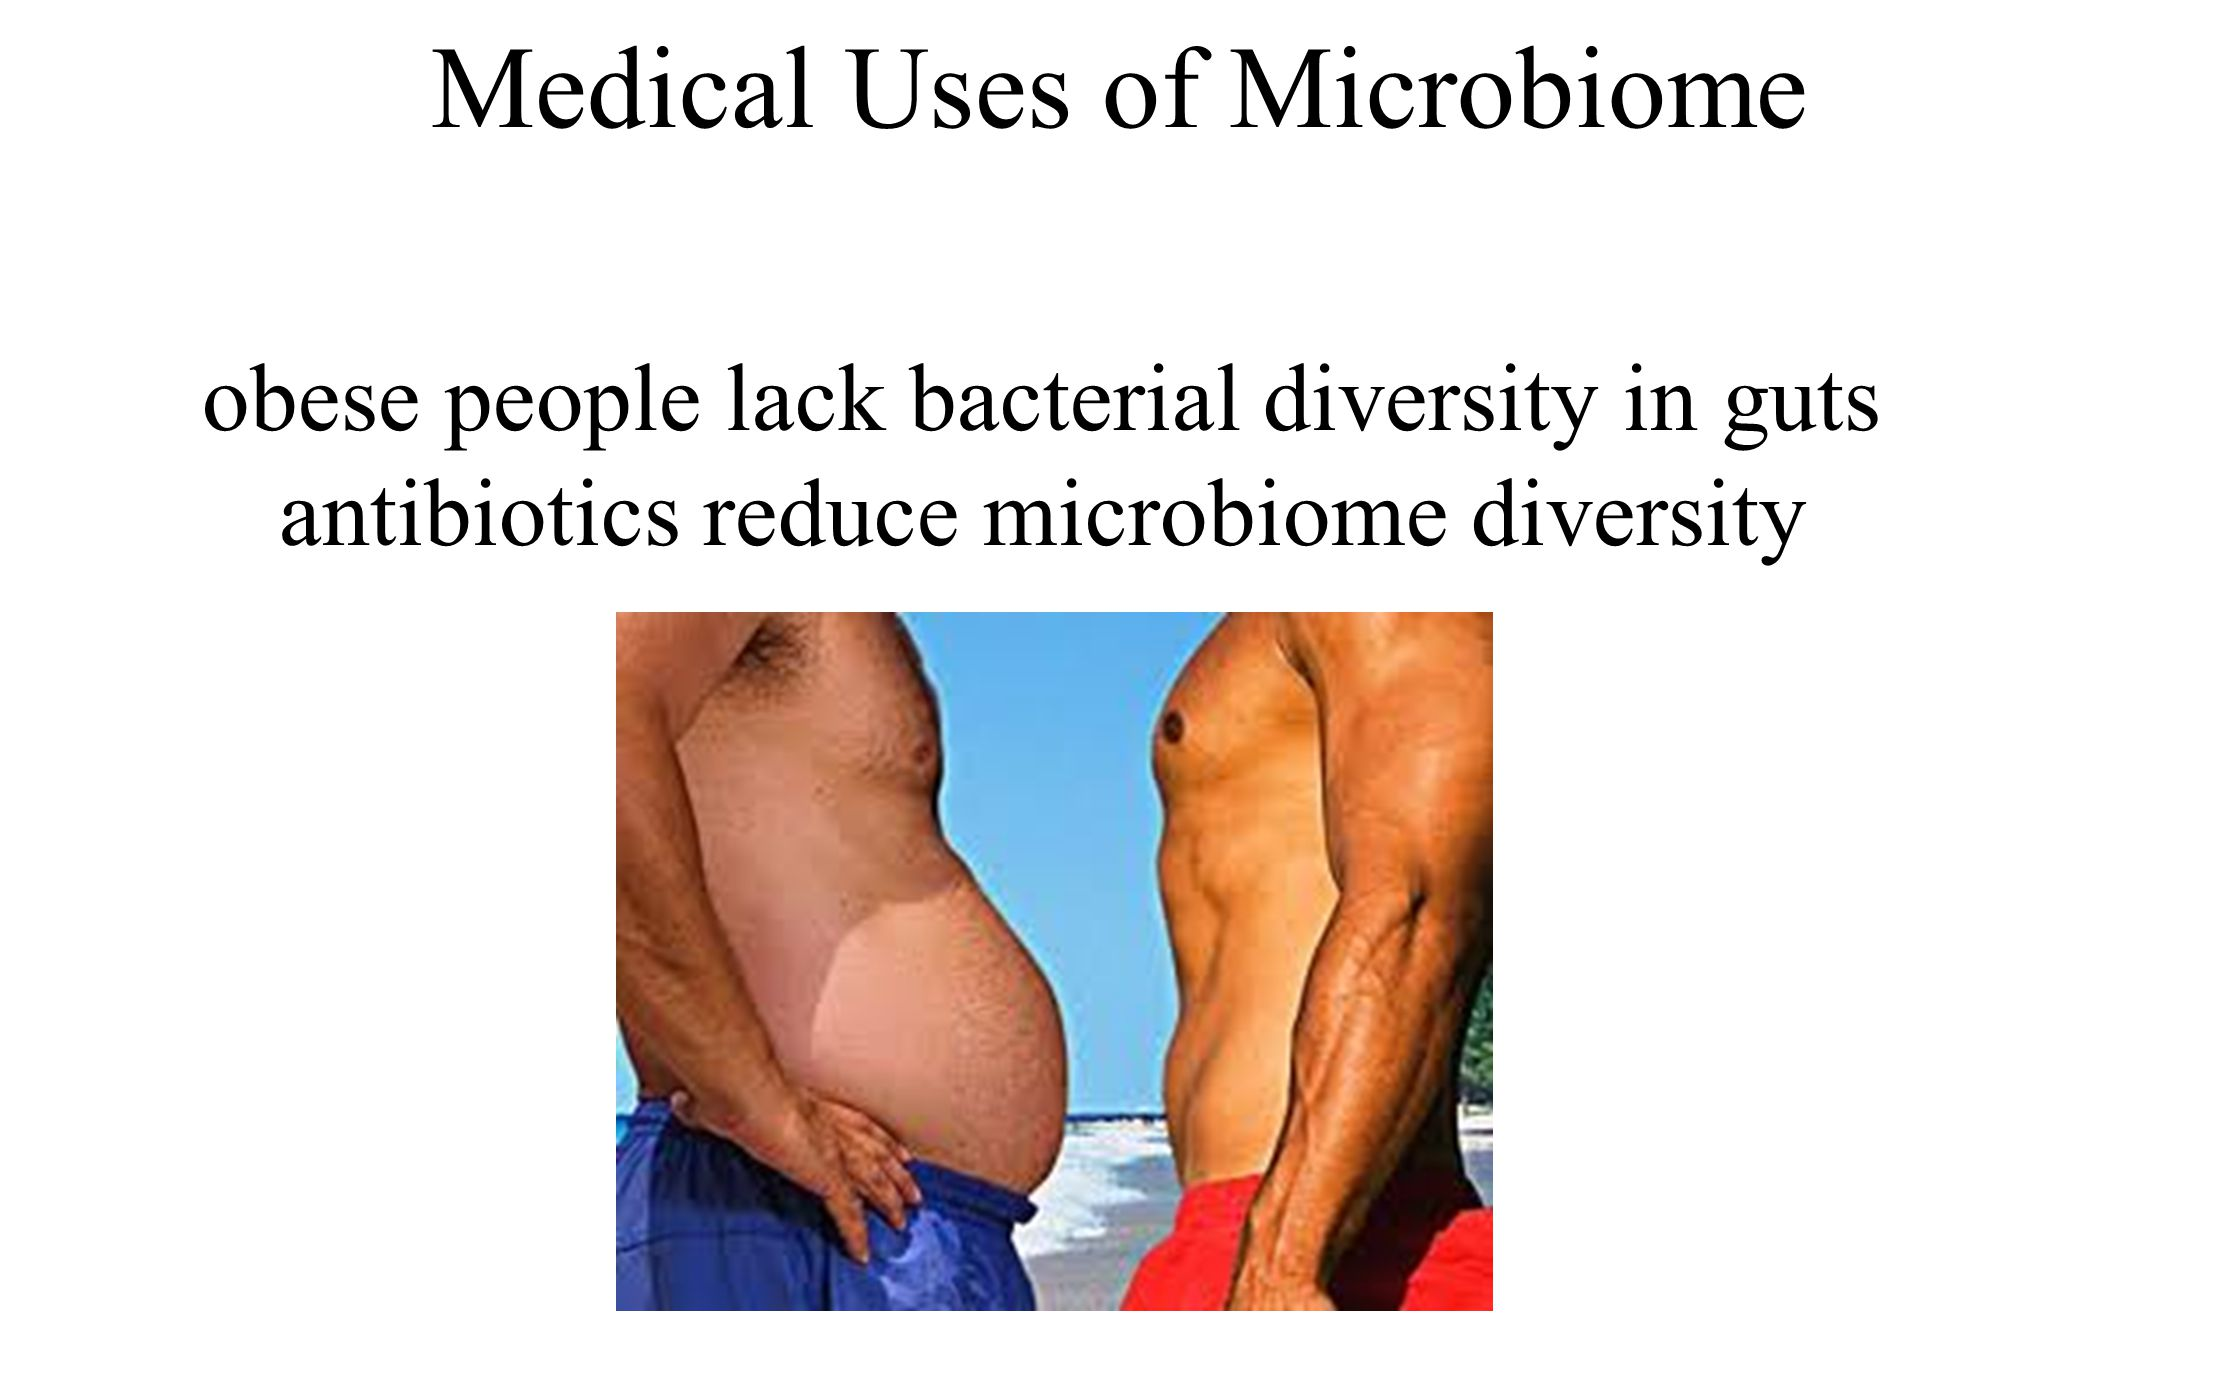 sequenced bacteria in stool samples humans 55 were thin 122 overweight or obese Medical Uses of Microbiome